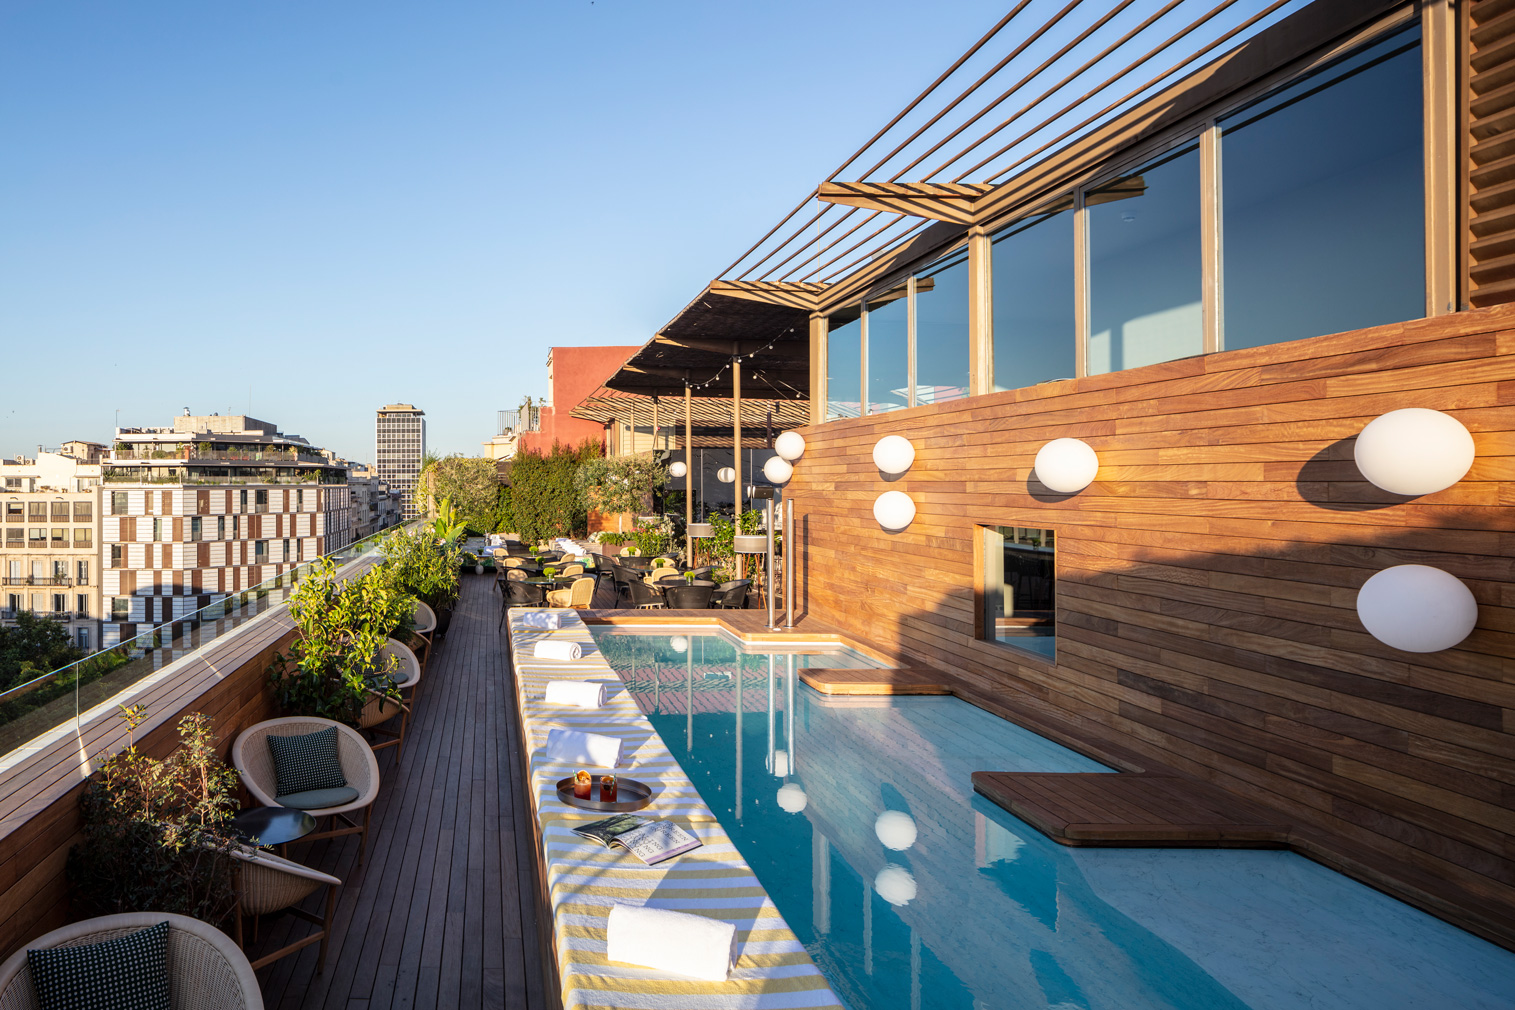 Sir Victor hotel in Barcelona - rooftop plunge pool